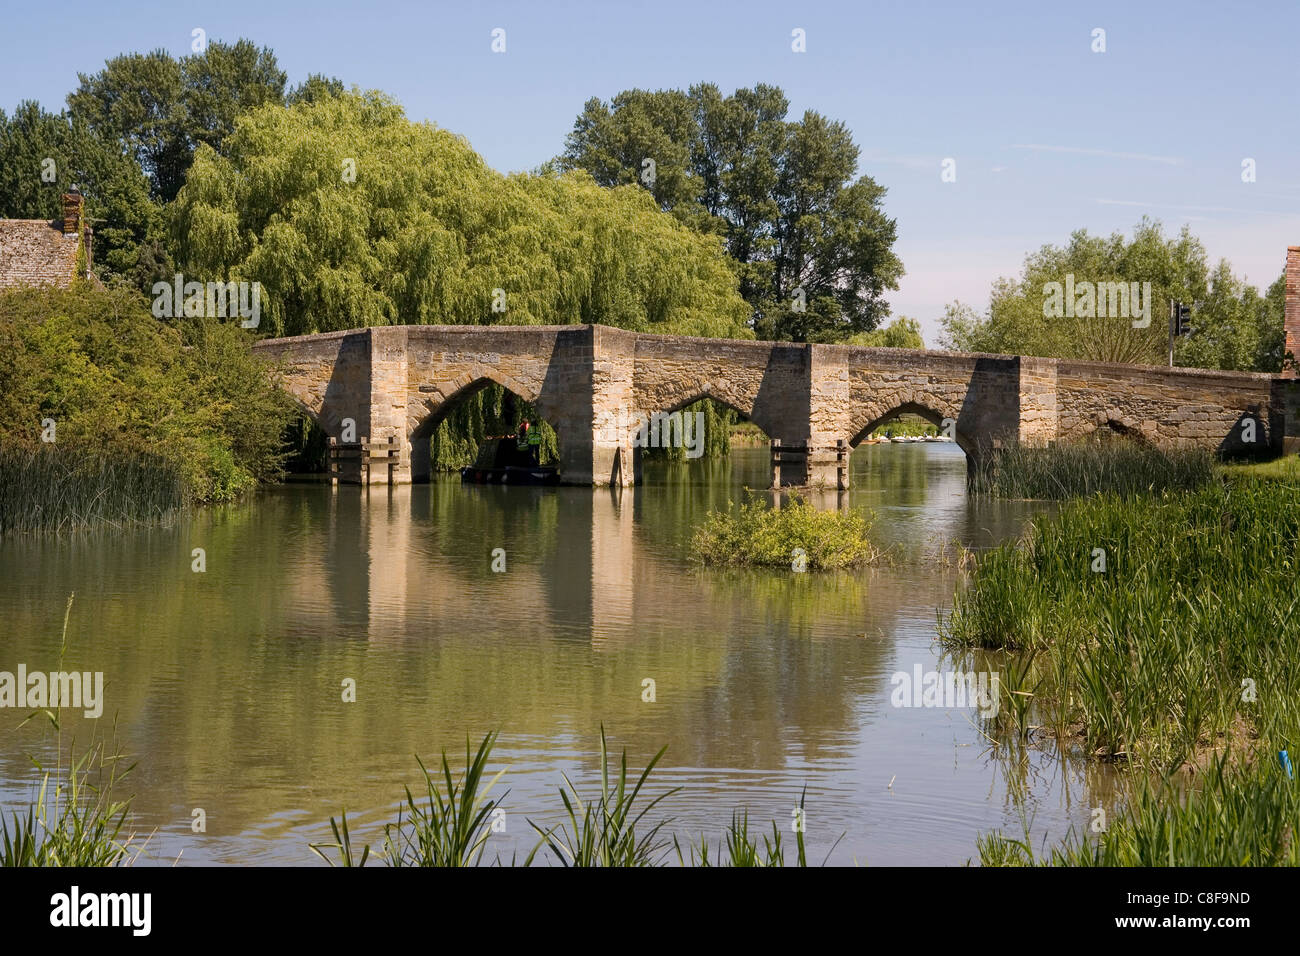 Newbridge, arguably the oldest bridge on the River Thames, built in the 13th century, Oxfordshire, England, United - Stock Image